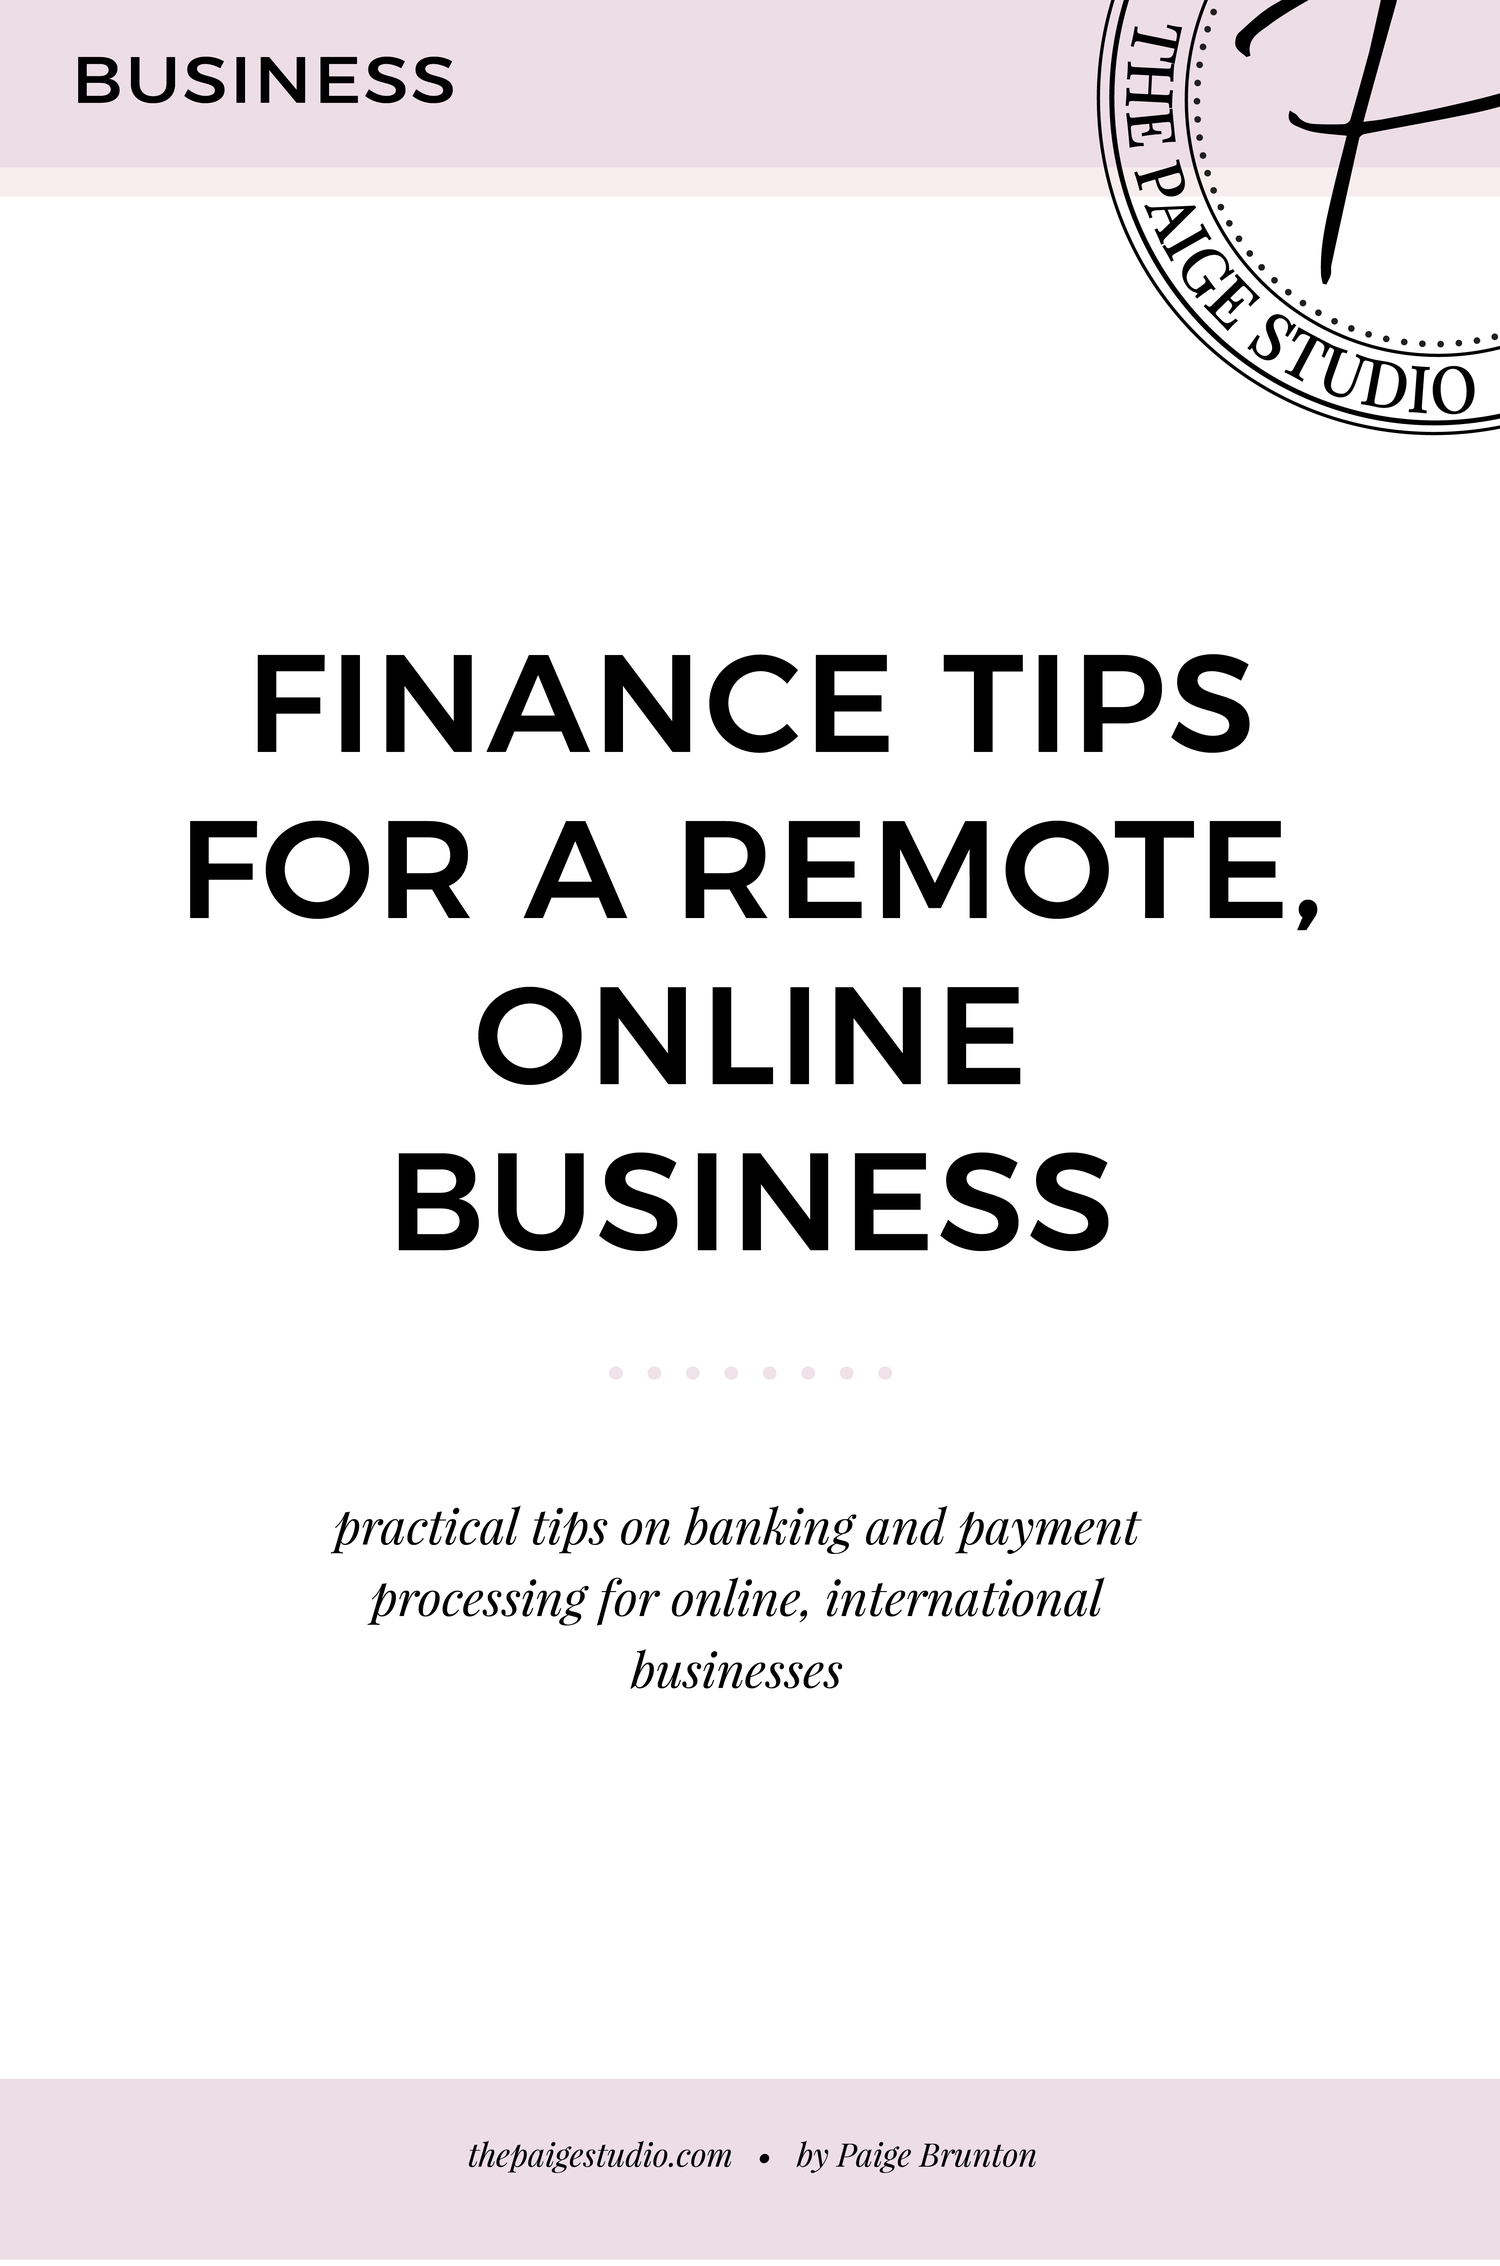 Finance, banking & payment processing tips for a completely remote